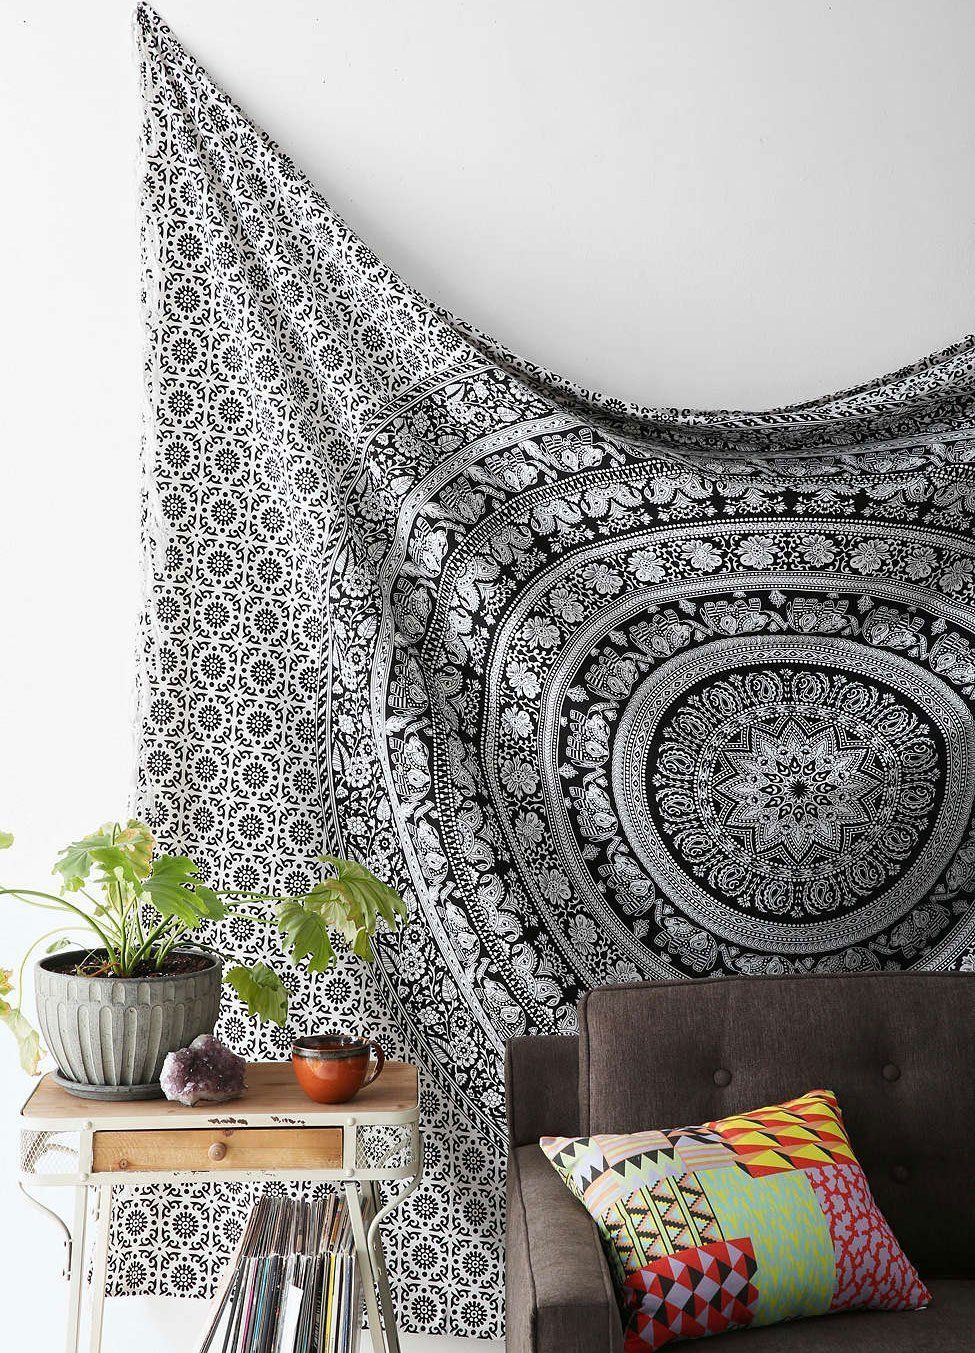 Lali Prints Hippie Black And White Tapestries Elephant Mandala Hippie Tapestry Indian Traditional Thr Elephant Tapestry Hippie Tapestry Hippie Mandala Tapestry